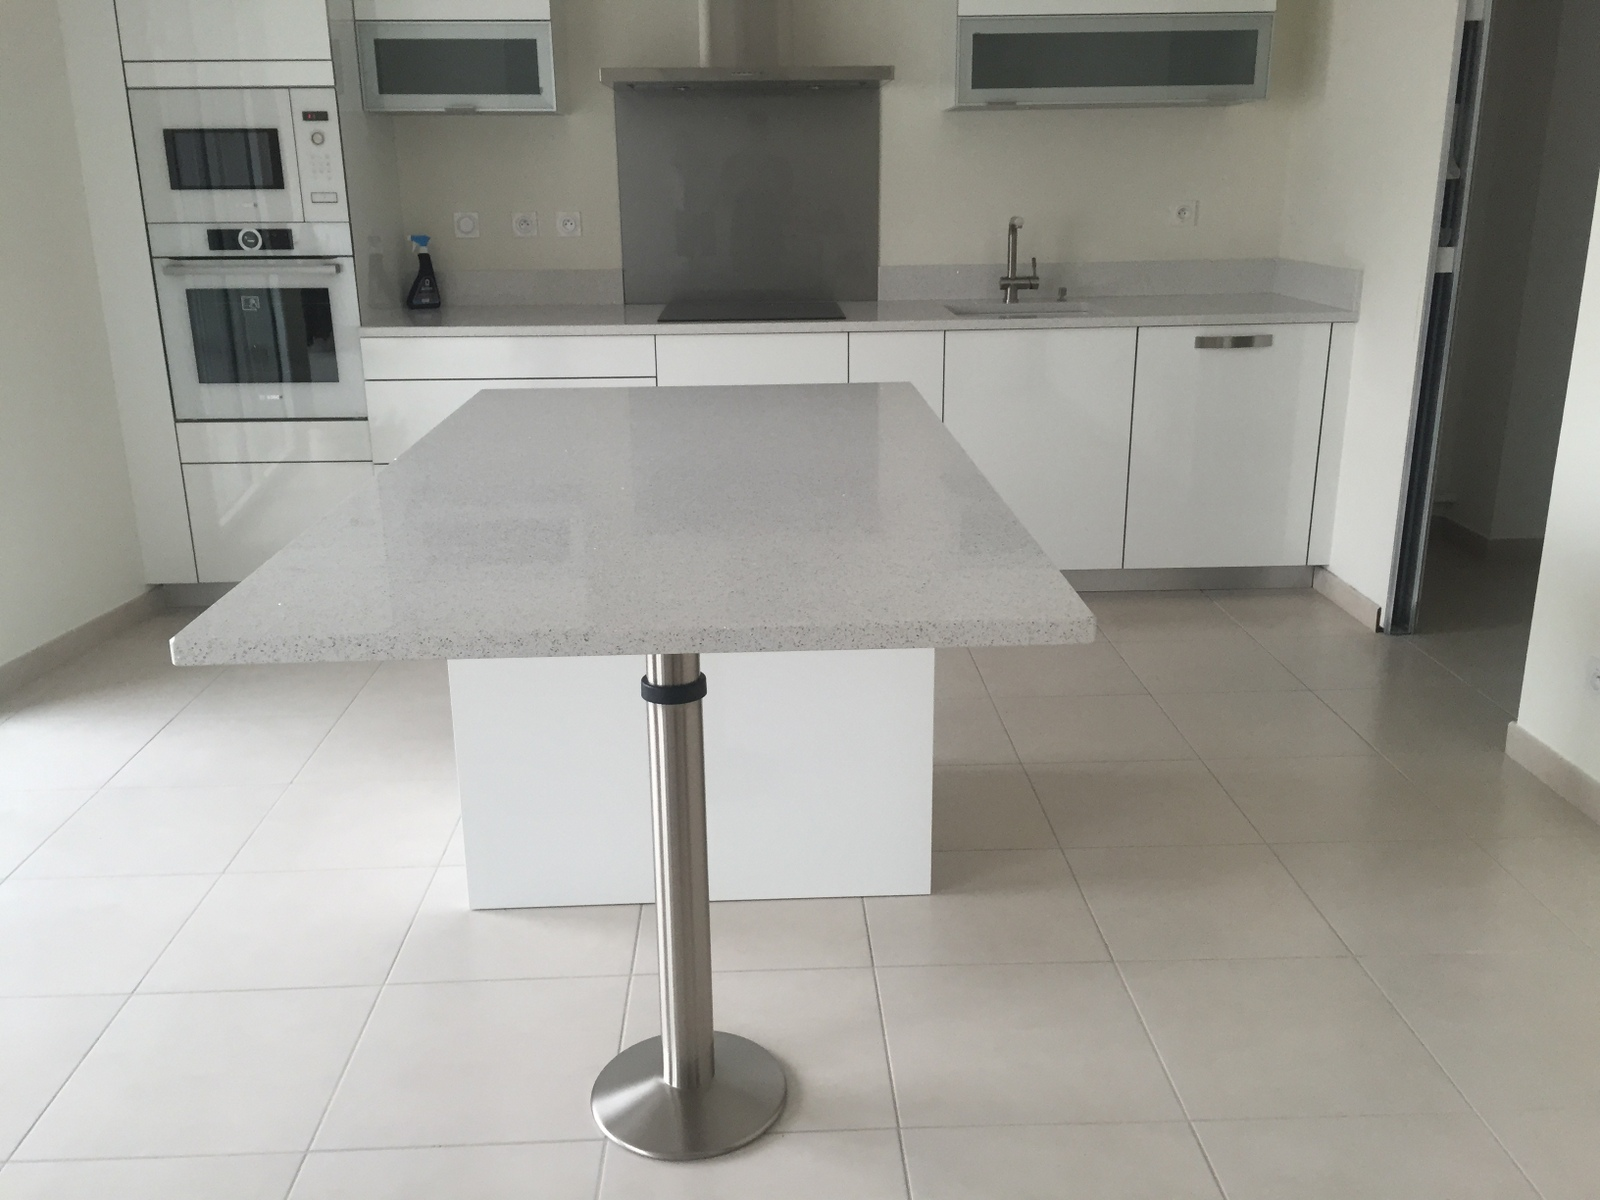 Pieds de table en granit ou quartz en gironde bordeaux for Installer plan de travail